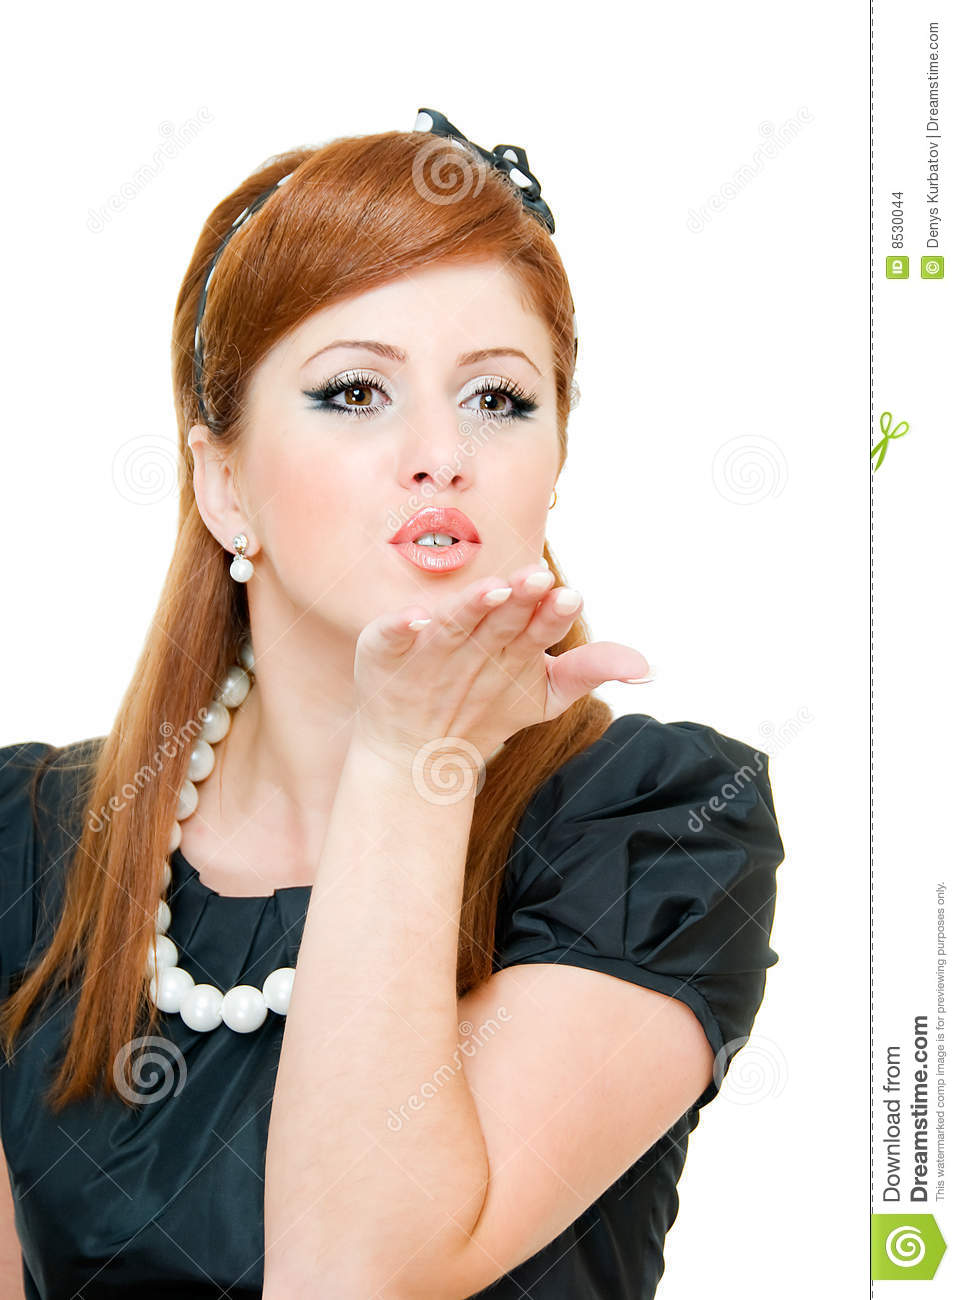 Air Kiss Stock Images - Image: 8530044